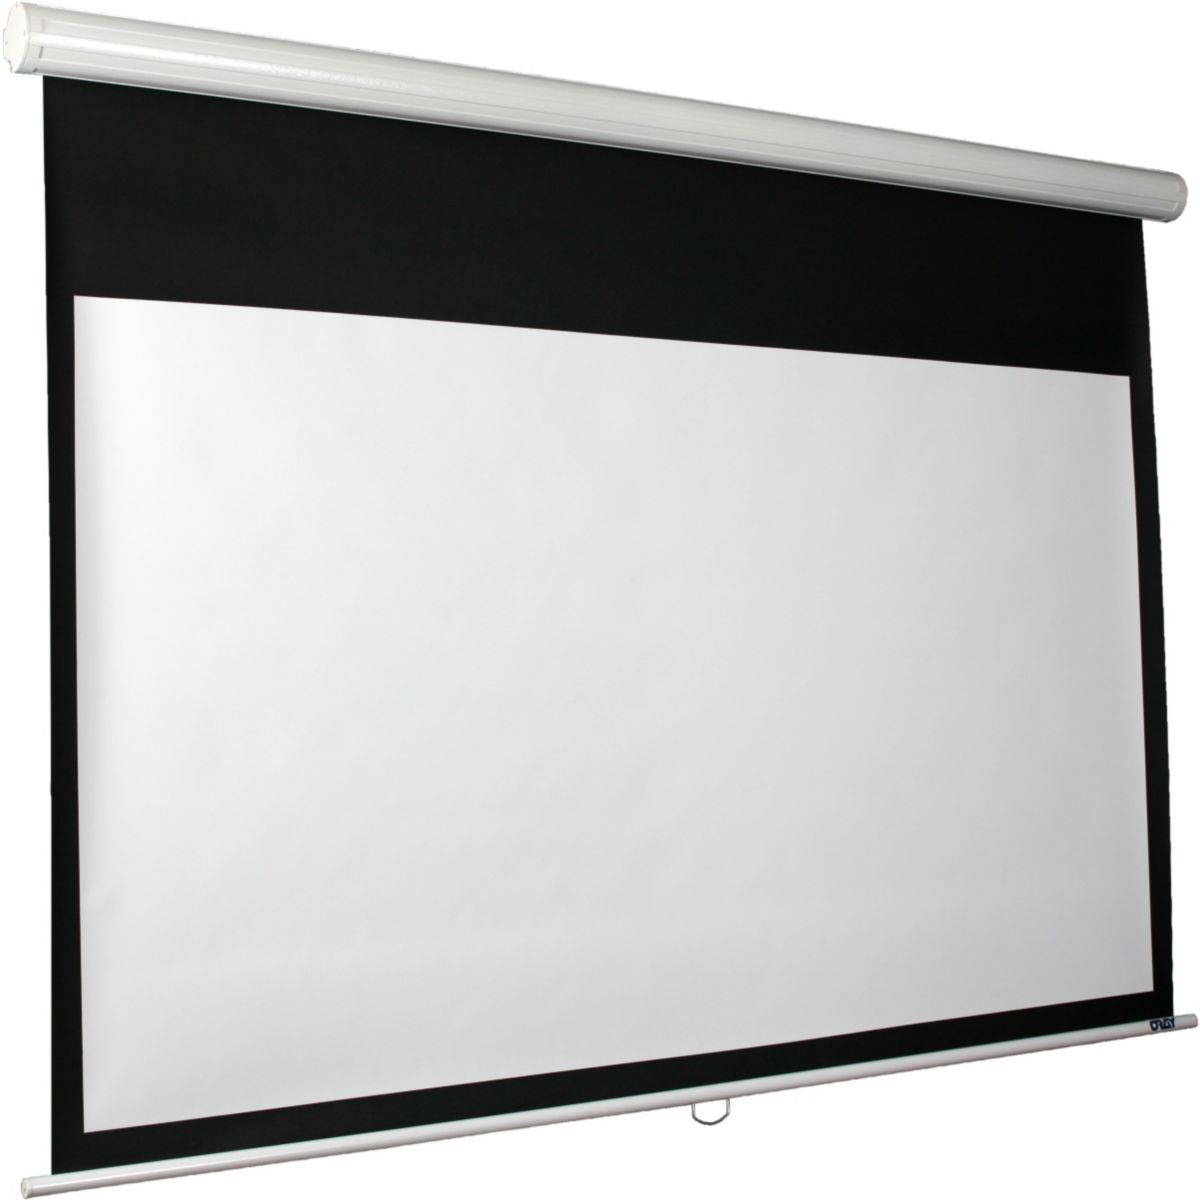 Ecran de projection oray supergear hc 97x172 - 15% de remise imm�diate avec le code : deal15 (photo)